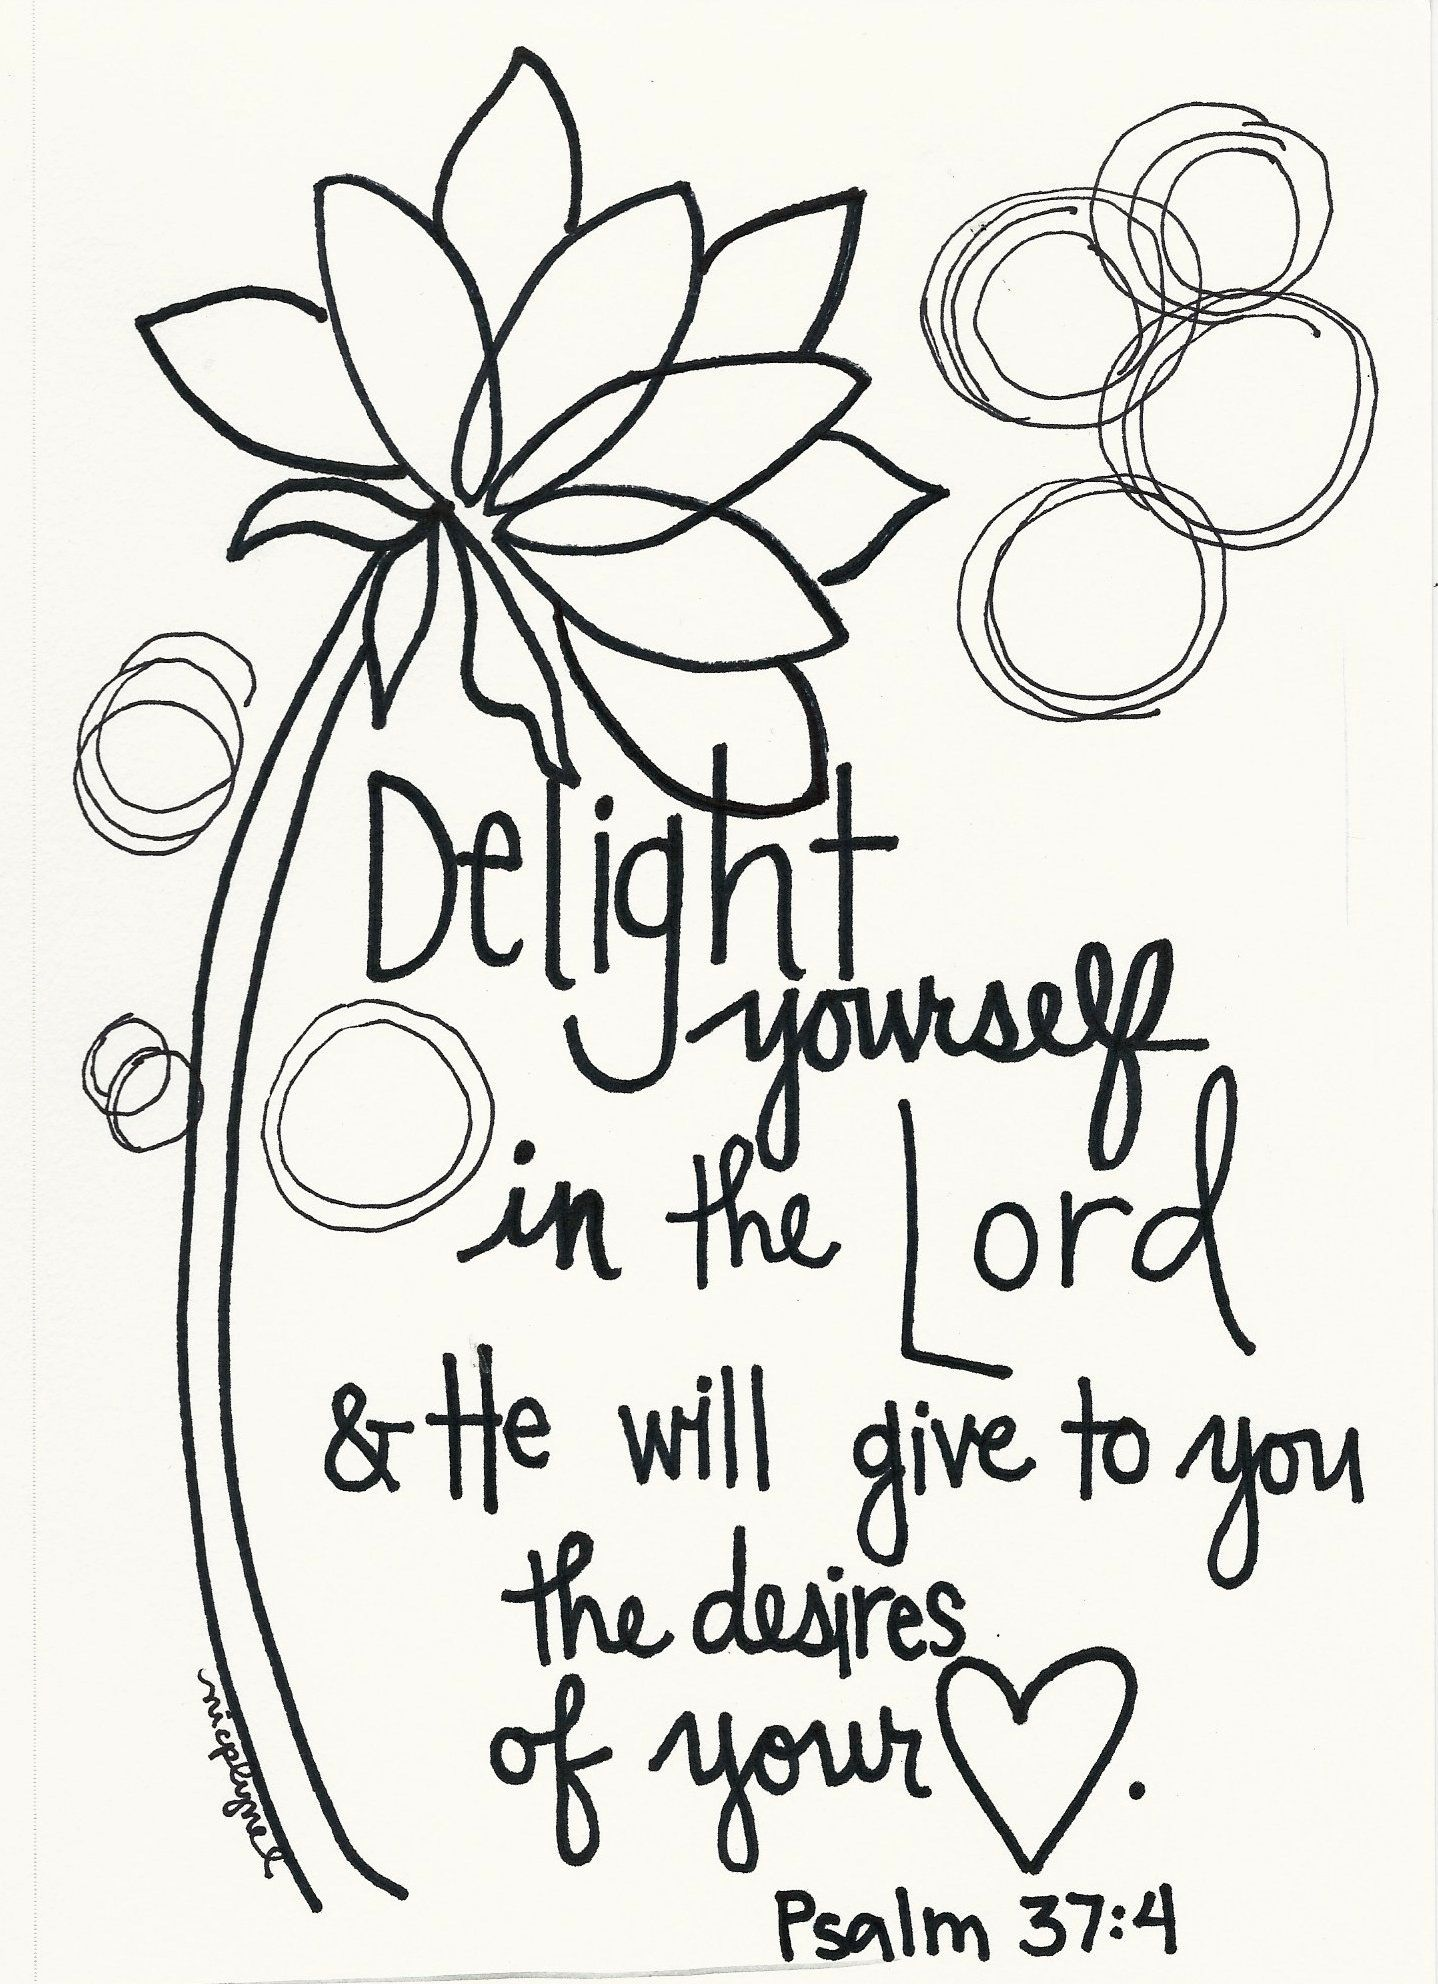 bible journaling coloring pages Pin by craftynana on Journaling | Pinterest | Bible, Bible verses  bible journaling coloring pages